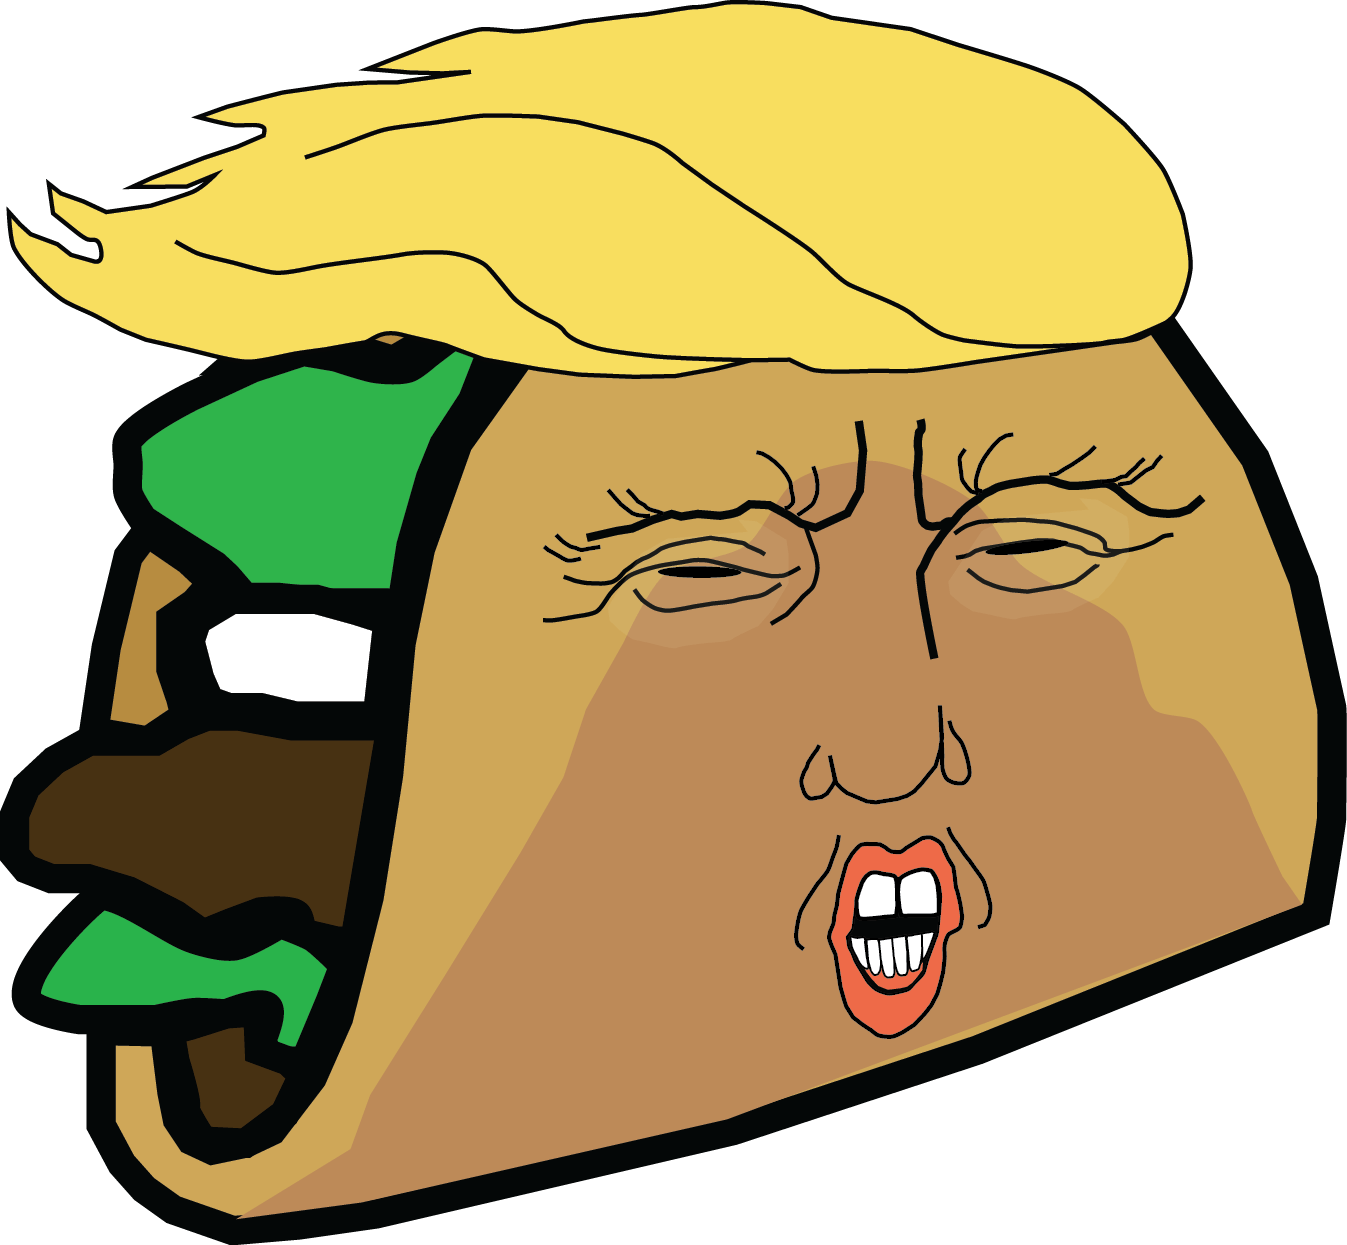 Restaurant Offers Discounts Thanks To Trump - Donald Trump Taco Stand Clipart (1347x1245), Png Download